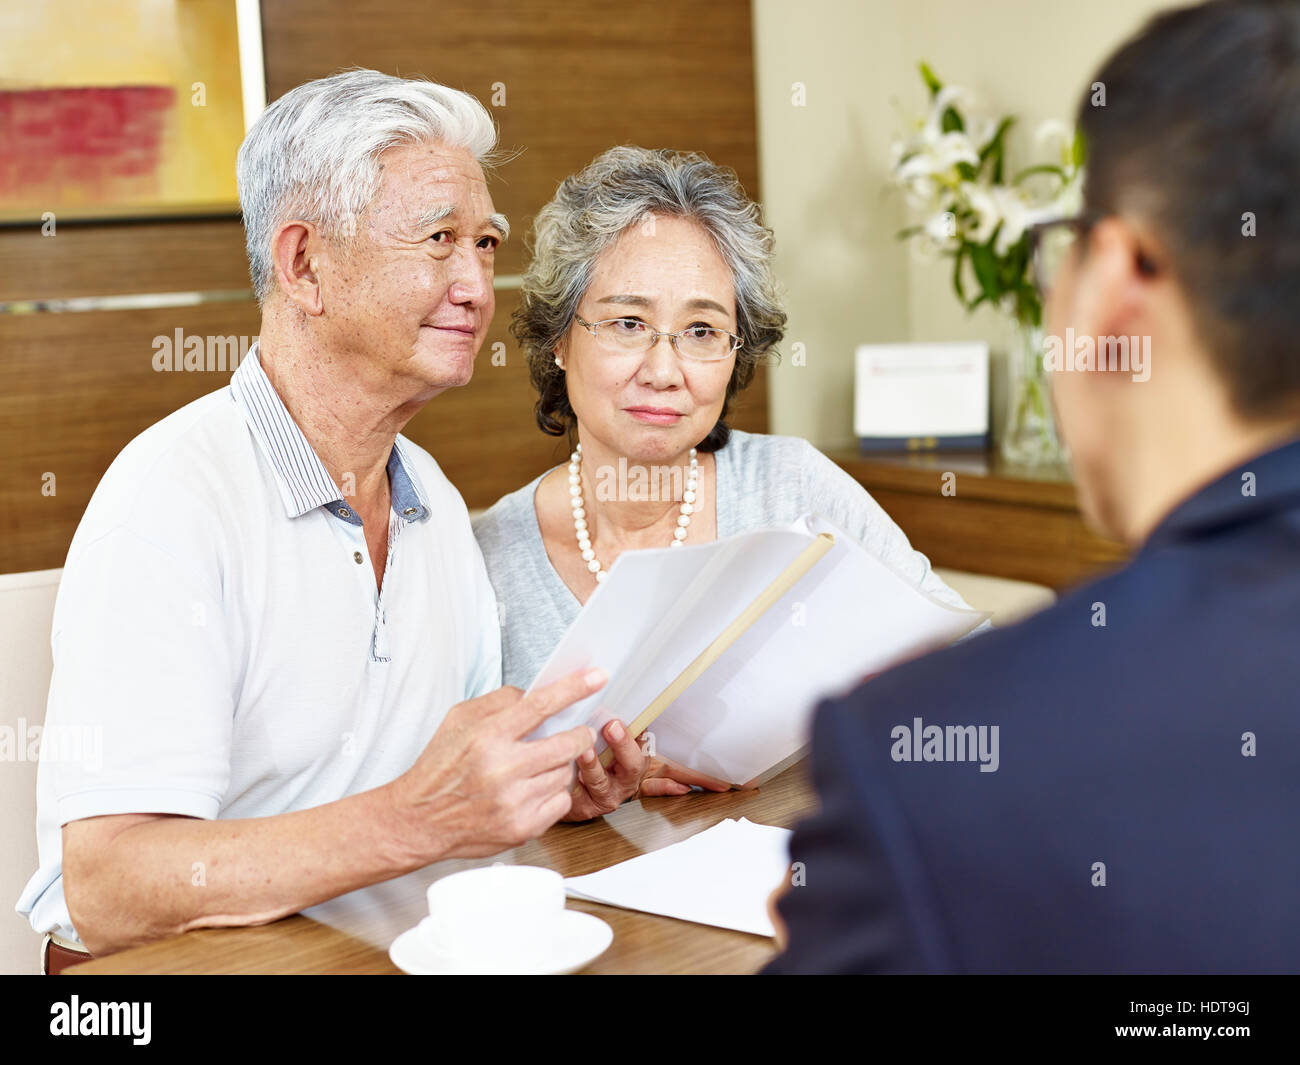 senior asian couple appear to be skeptical after reading a proposal - Stock Image